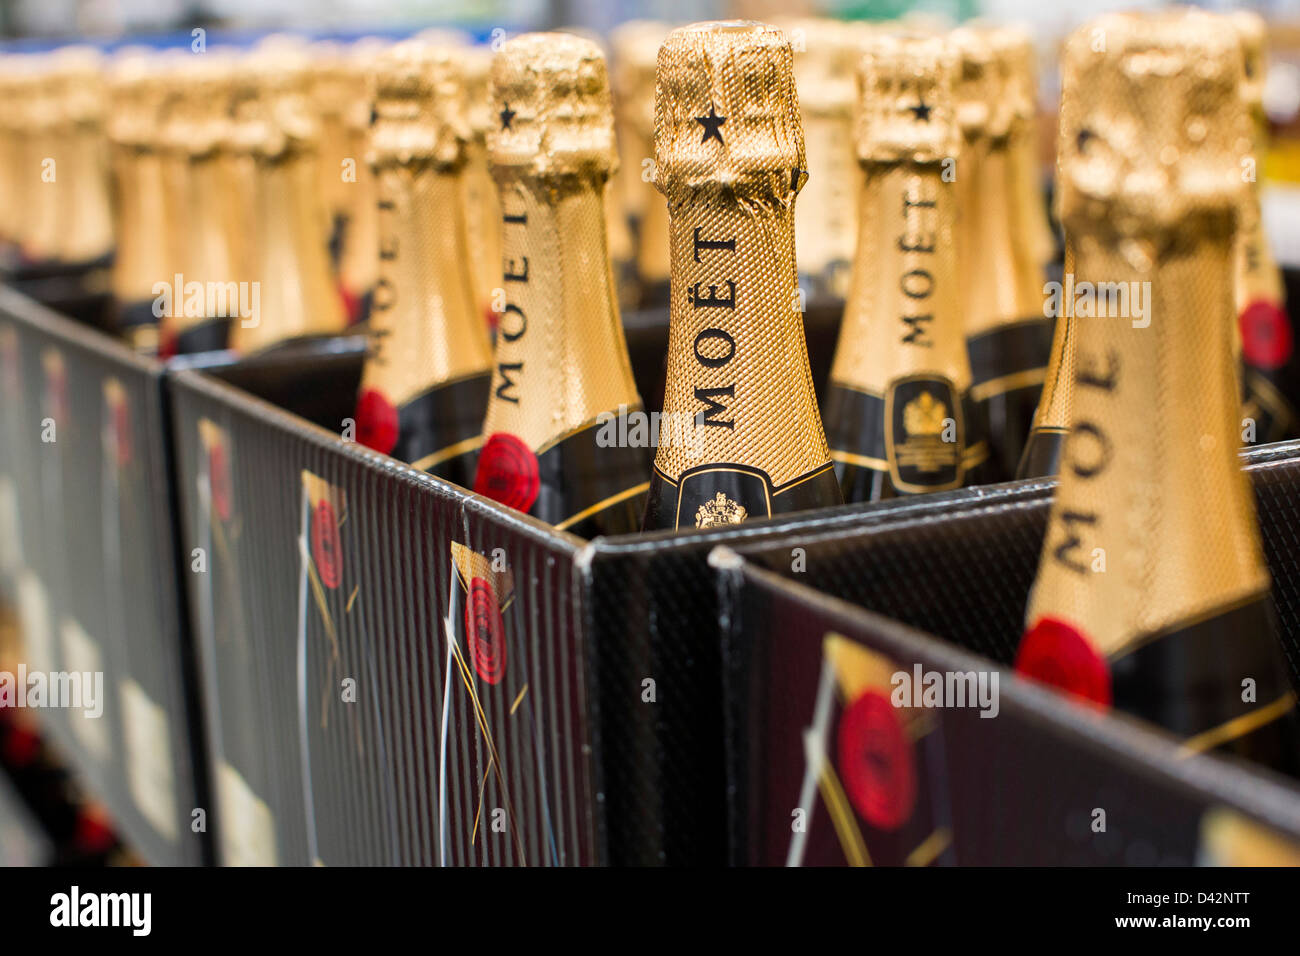 Moet champagne on display at a costco wholesale warehouse club stock moet champagne on display at a costco wholesale warehouse club stock photo 54150792 alamy thecheapjerseys Images